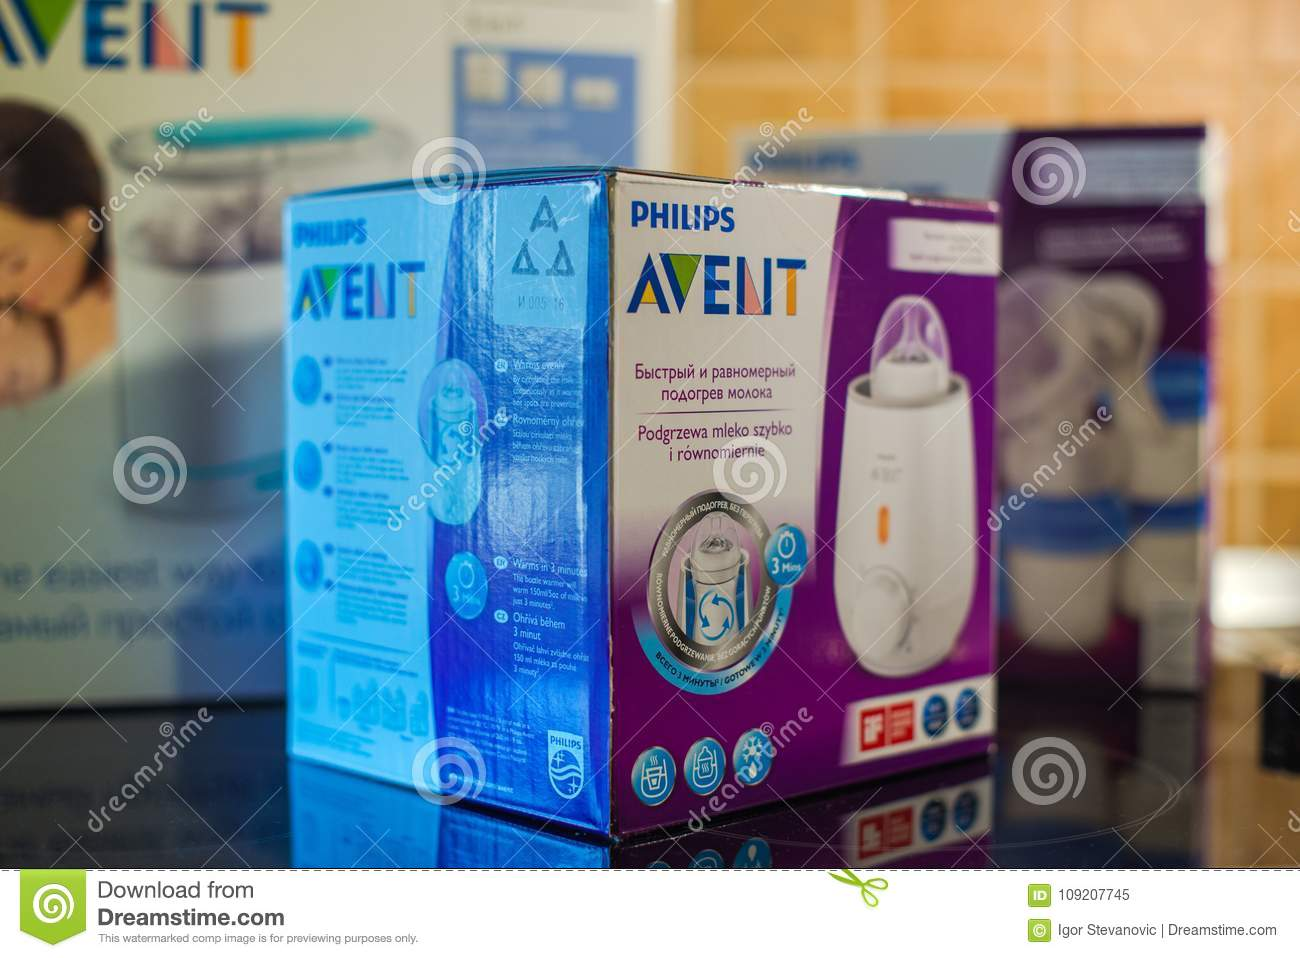 Philips Avent Baby Feeding Products Editorial Image Image Of